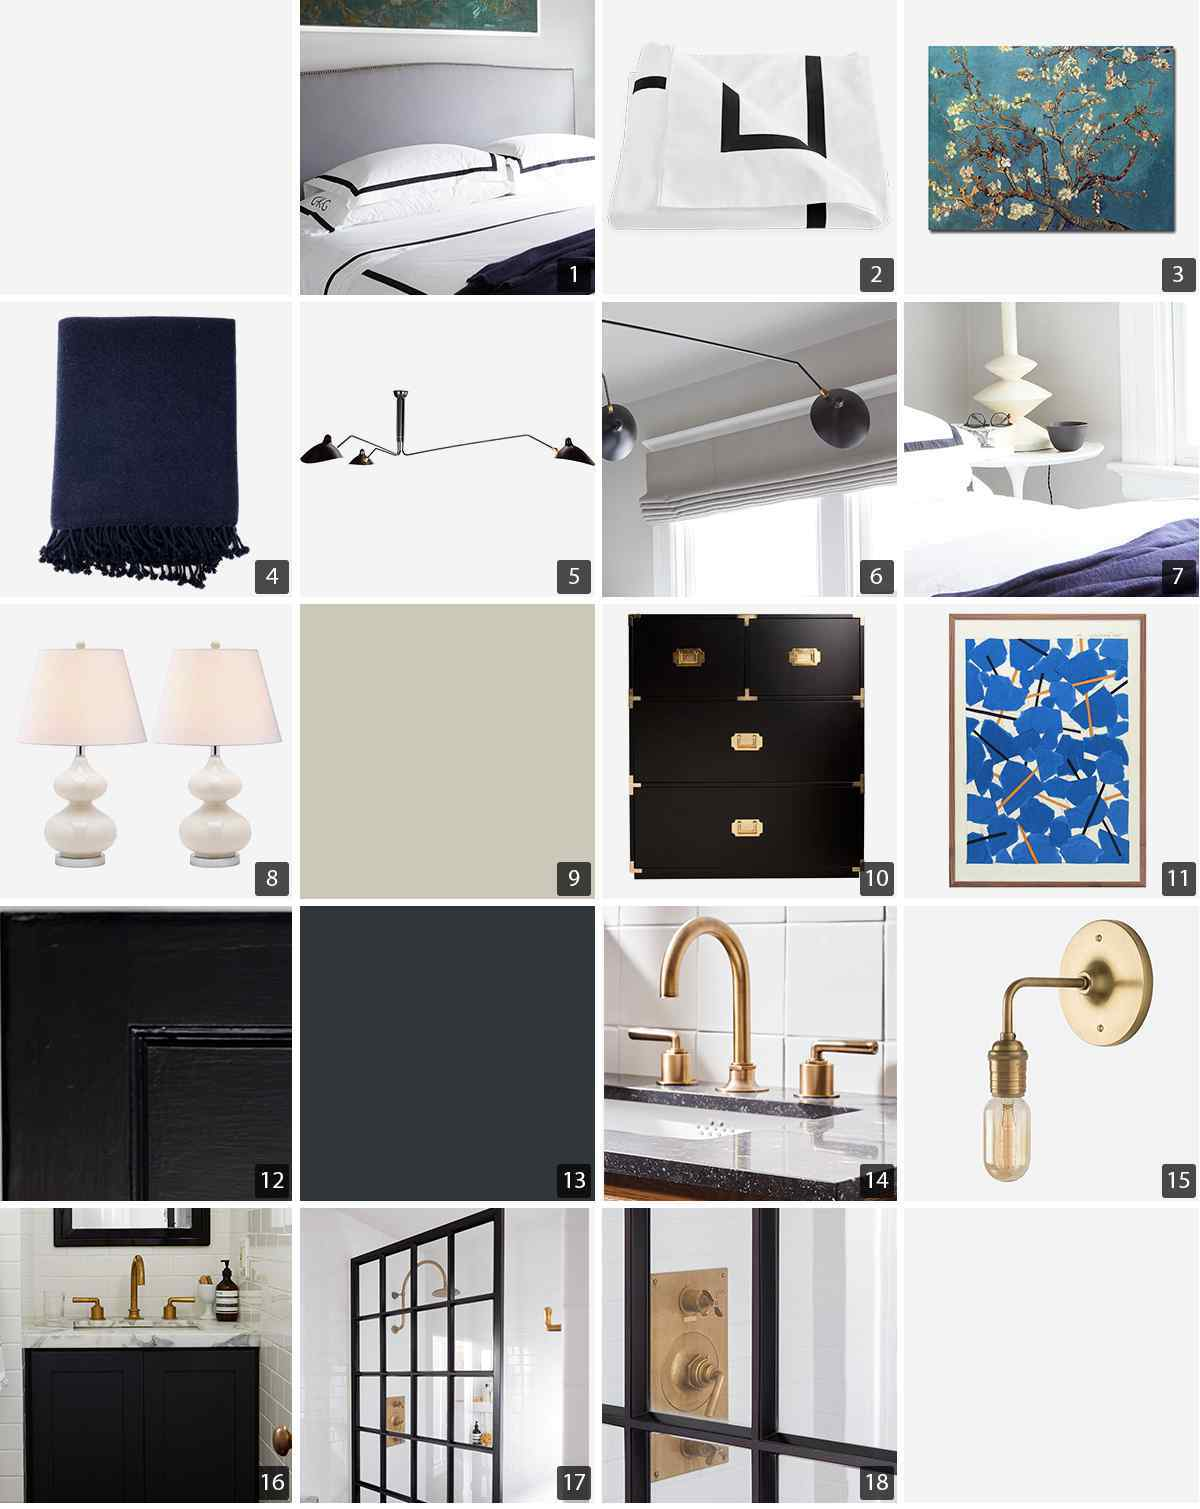 Collage of bedroom and bath products including white bedding, blue art, and gold hardware photo